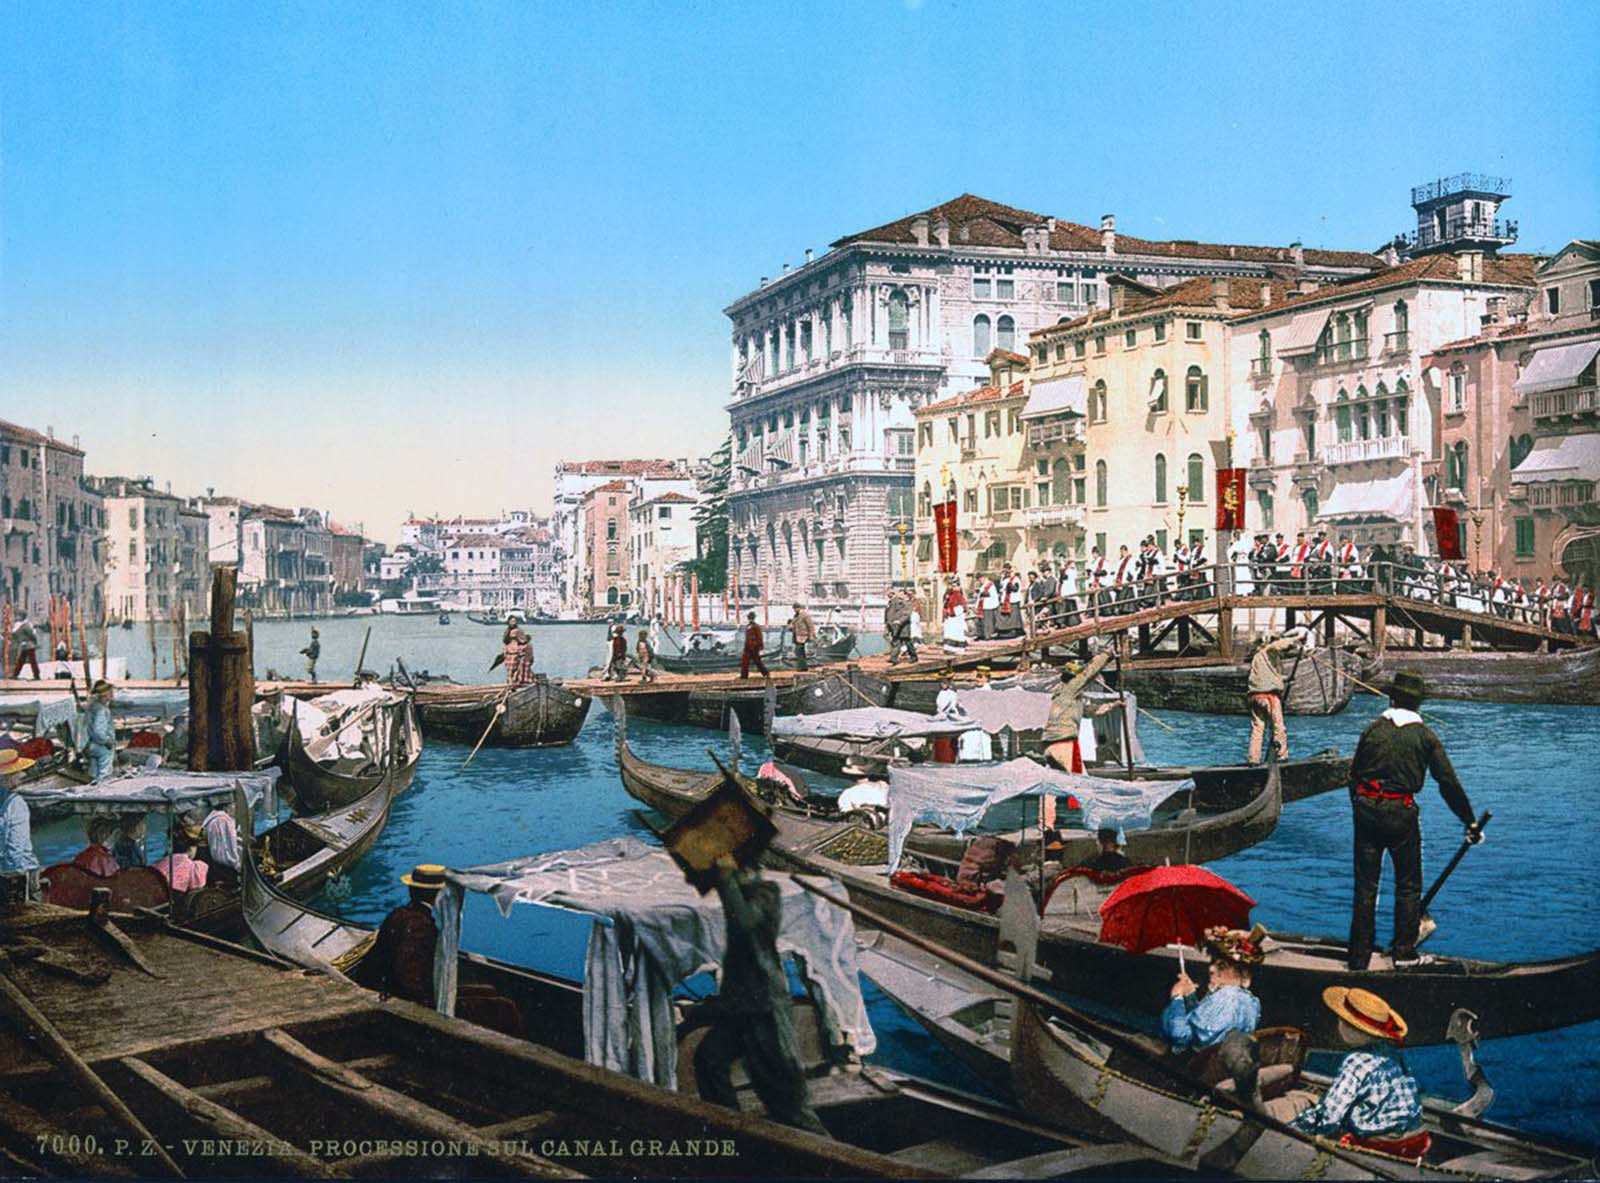 venice-in-beautiful-old-color-images-1890_13.jpg